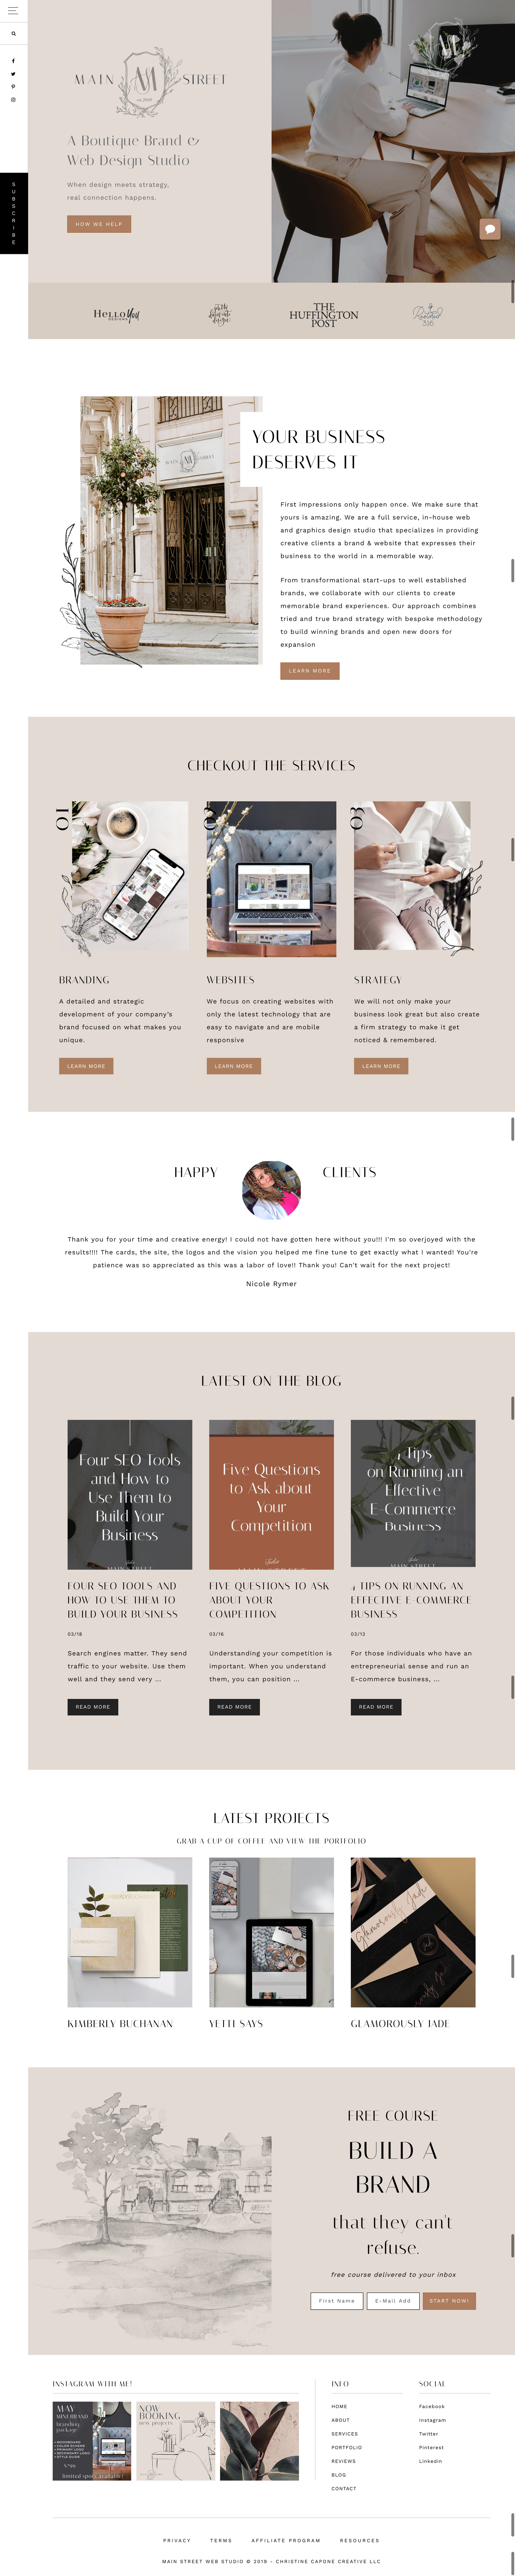 Main Street Web Studio We Are A Boutique Branding And Web Design Studio That Helps Small Busine In 2020 Squarespace Web Design Web Layout Design Squarespace Design